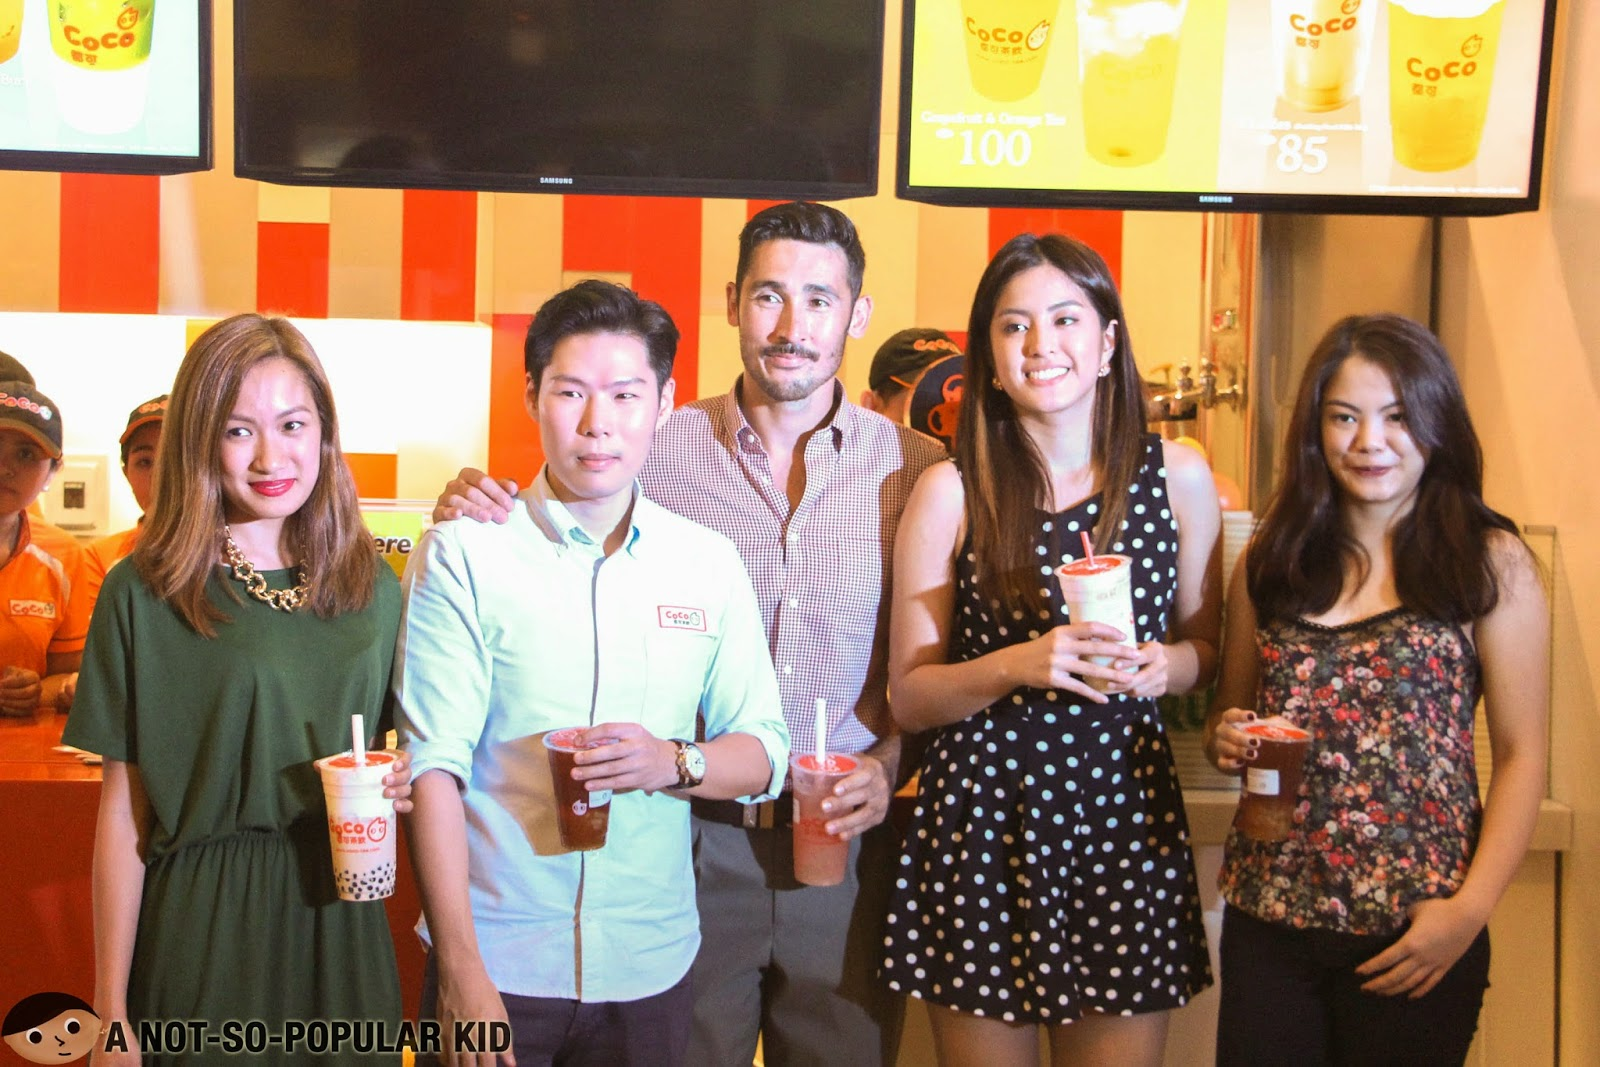 Laureen Uy, Chris Everingham, Gretchen Ho and Selina Dagdag with the store owner of CoCo